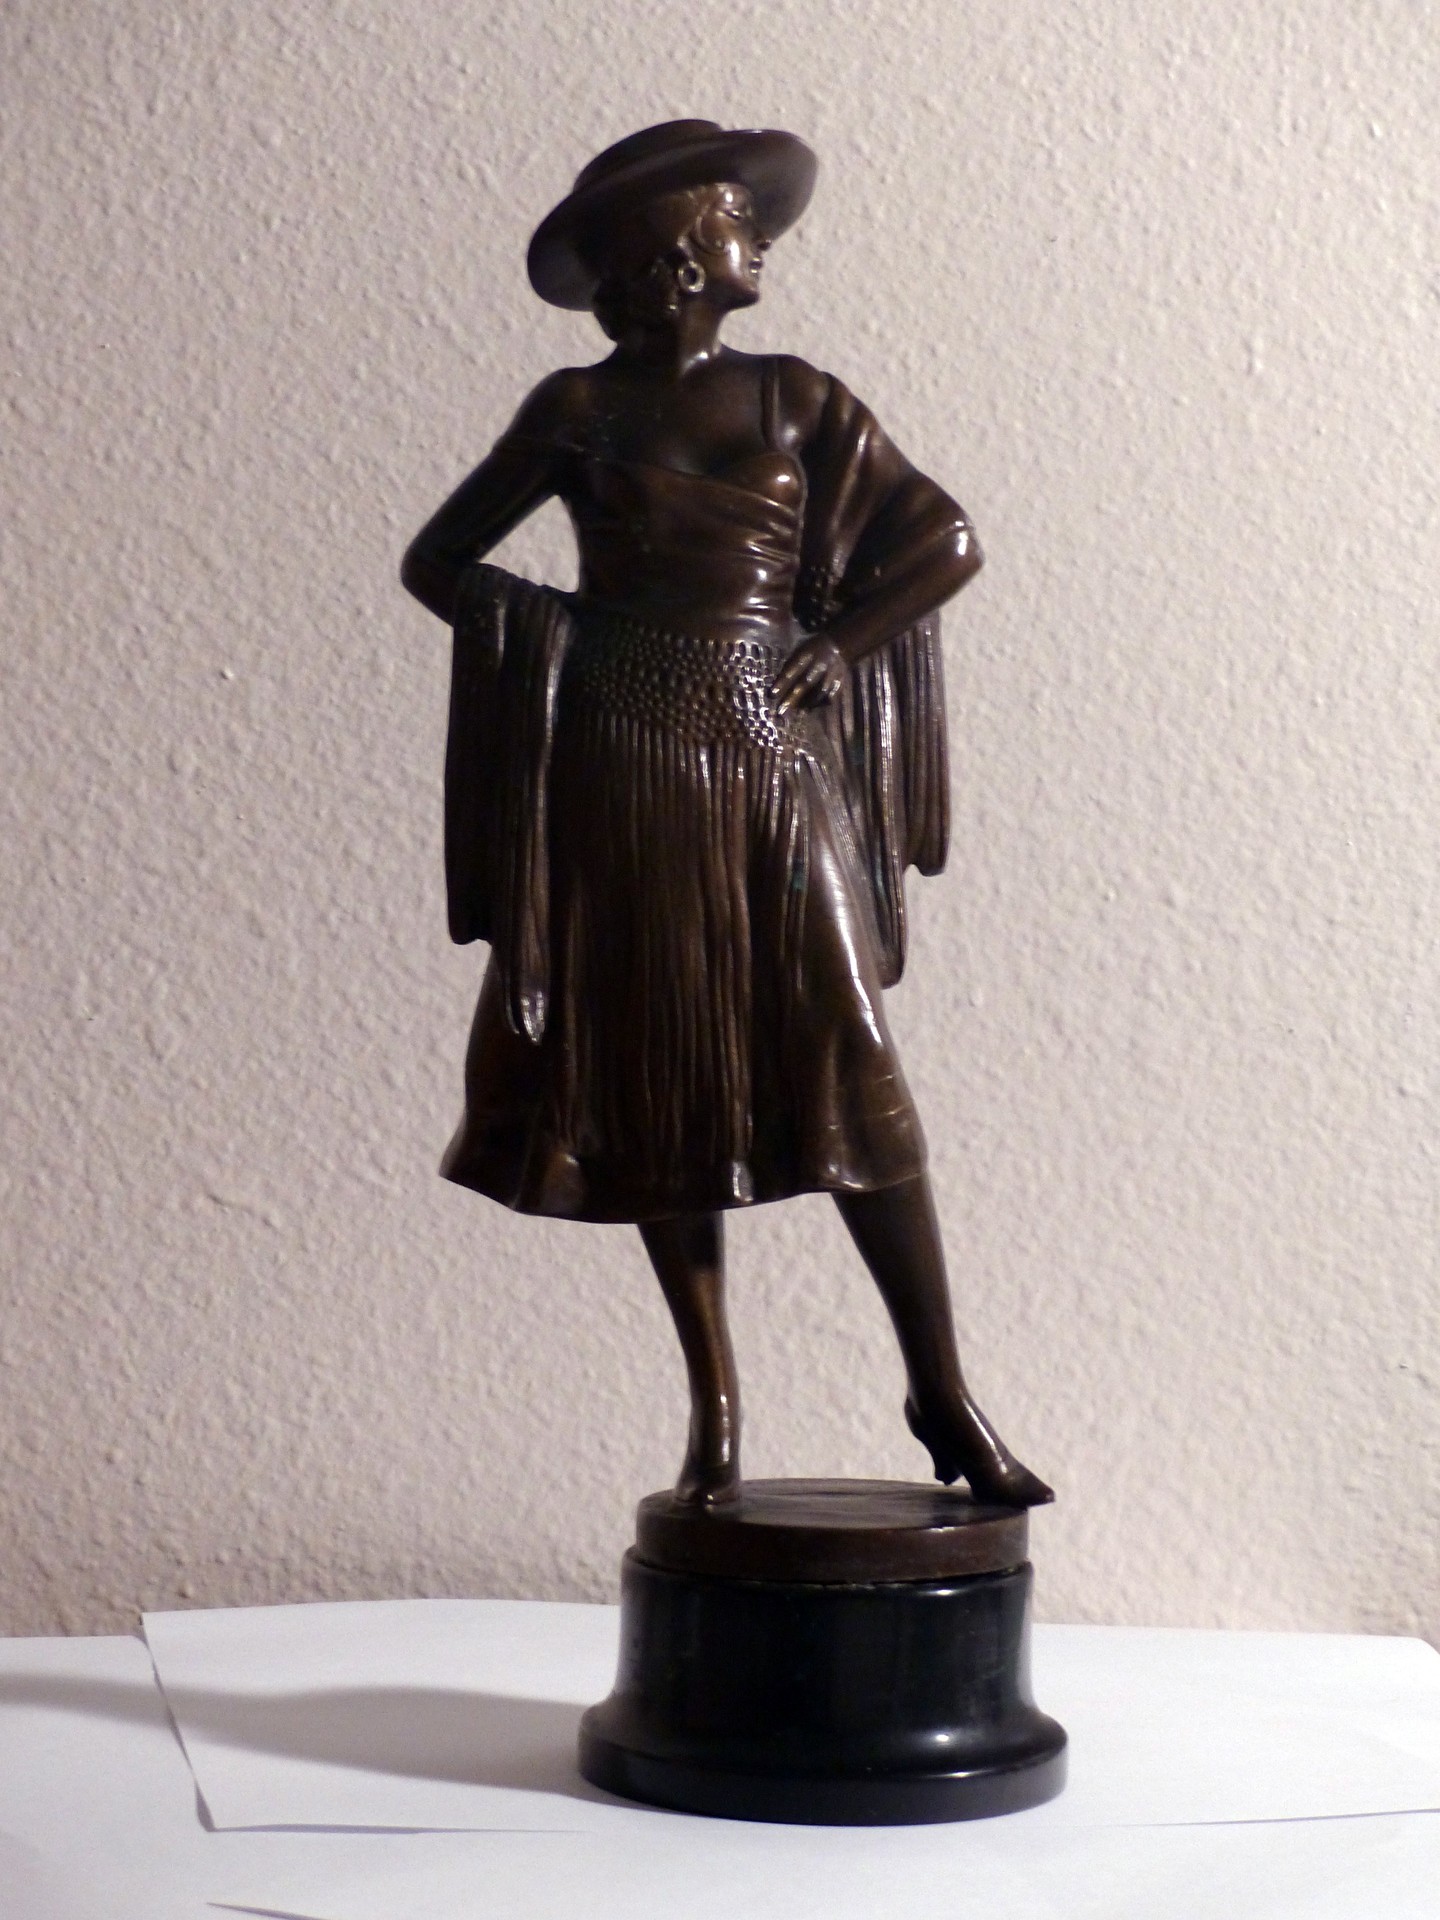 Patinated bronze 14 1/2 in. Signed 'Barner' on base